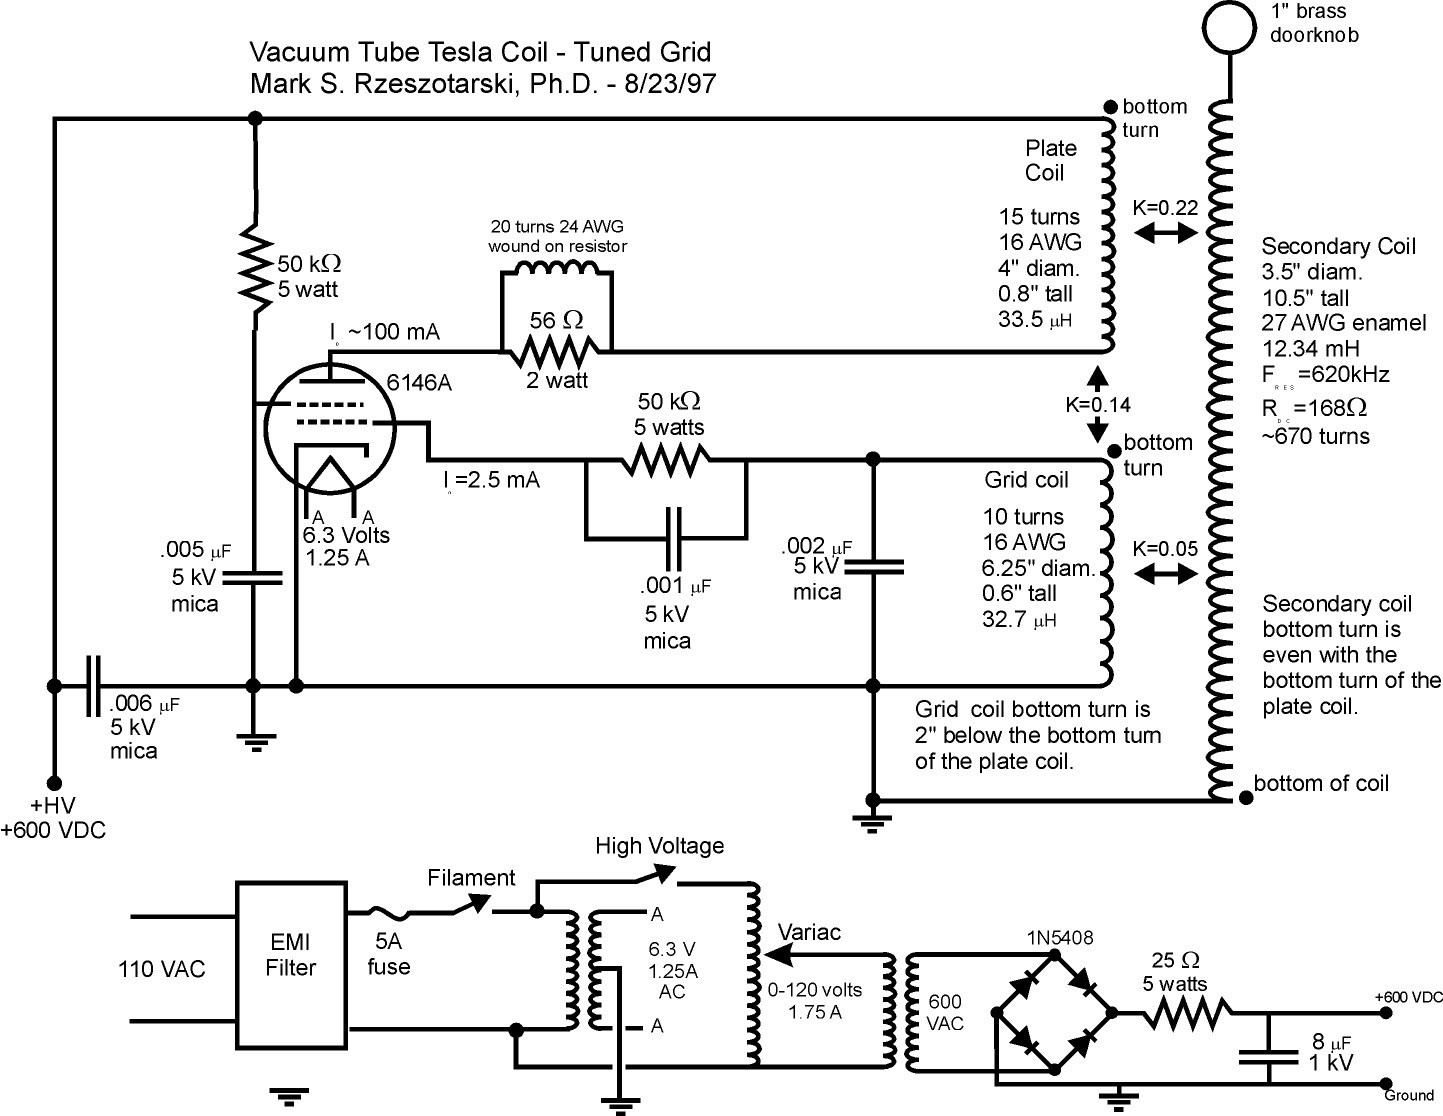 Tesla Coil Circuit Page 3 Power Supply Circuits Telephone Gt Dtmf Decoder With Voice L7625 Nextgr Miniature Vacuum Tube